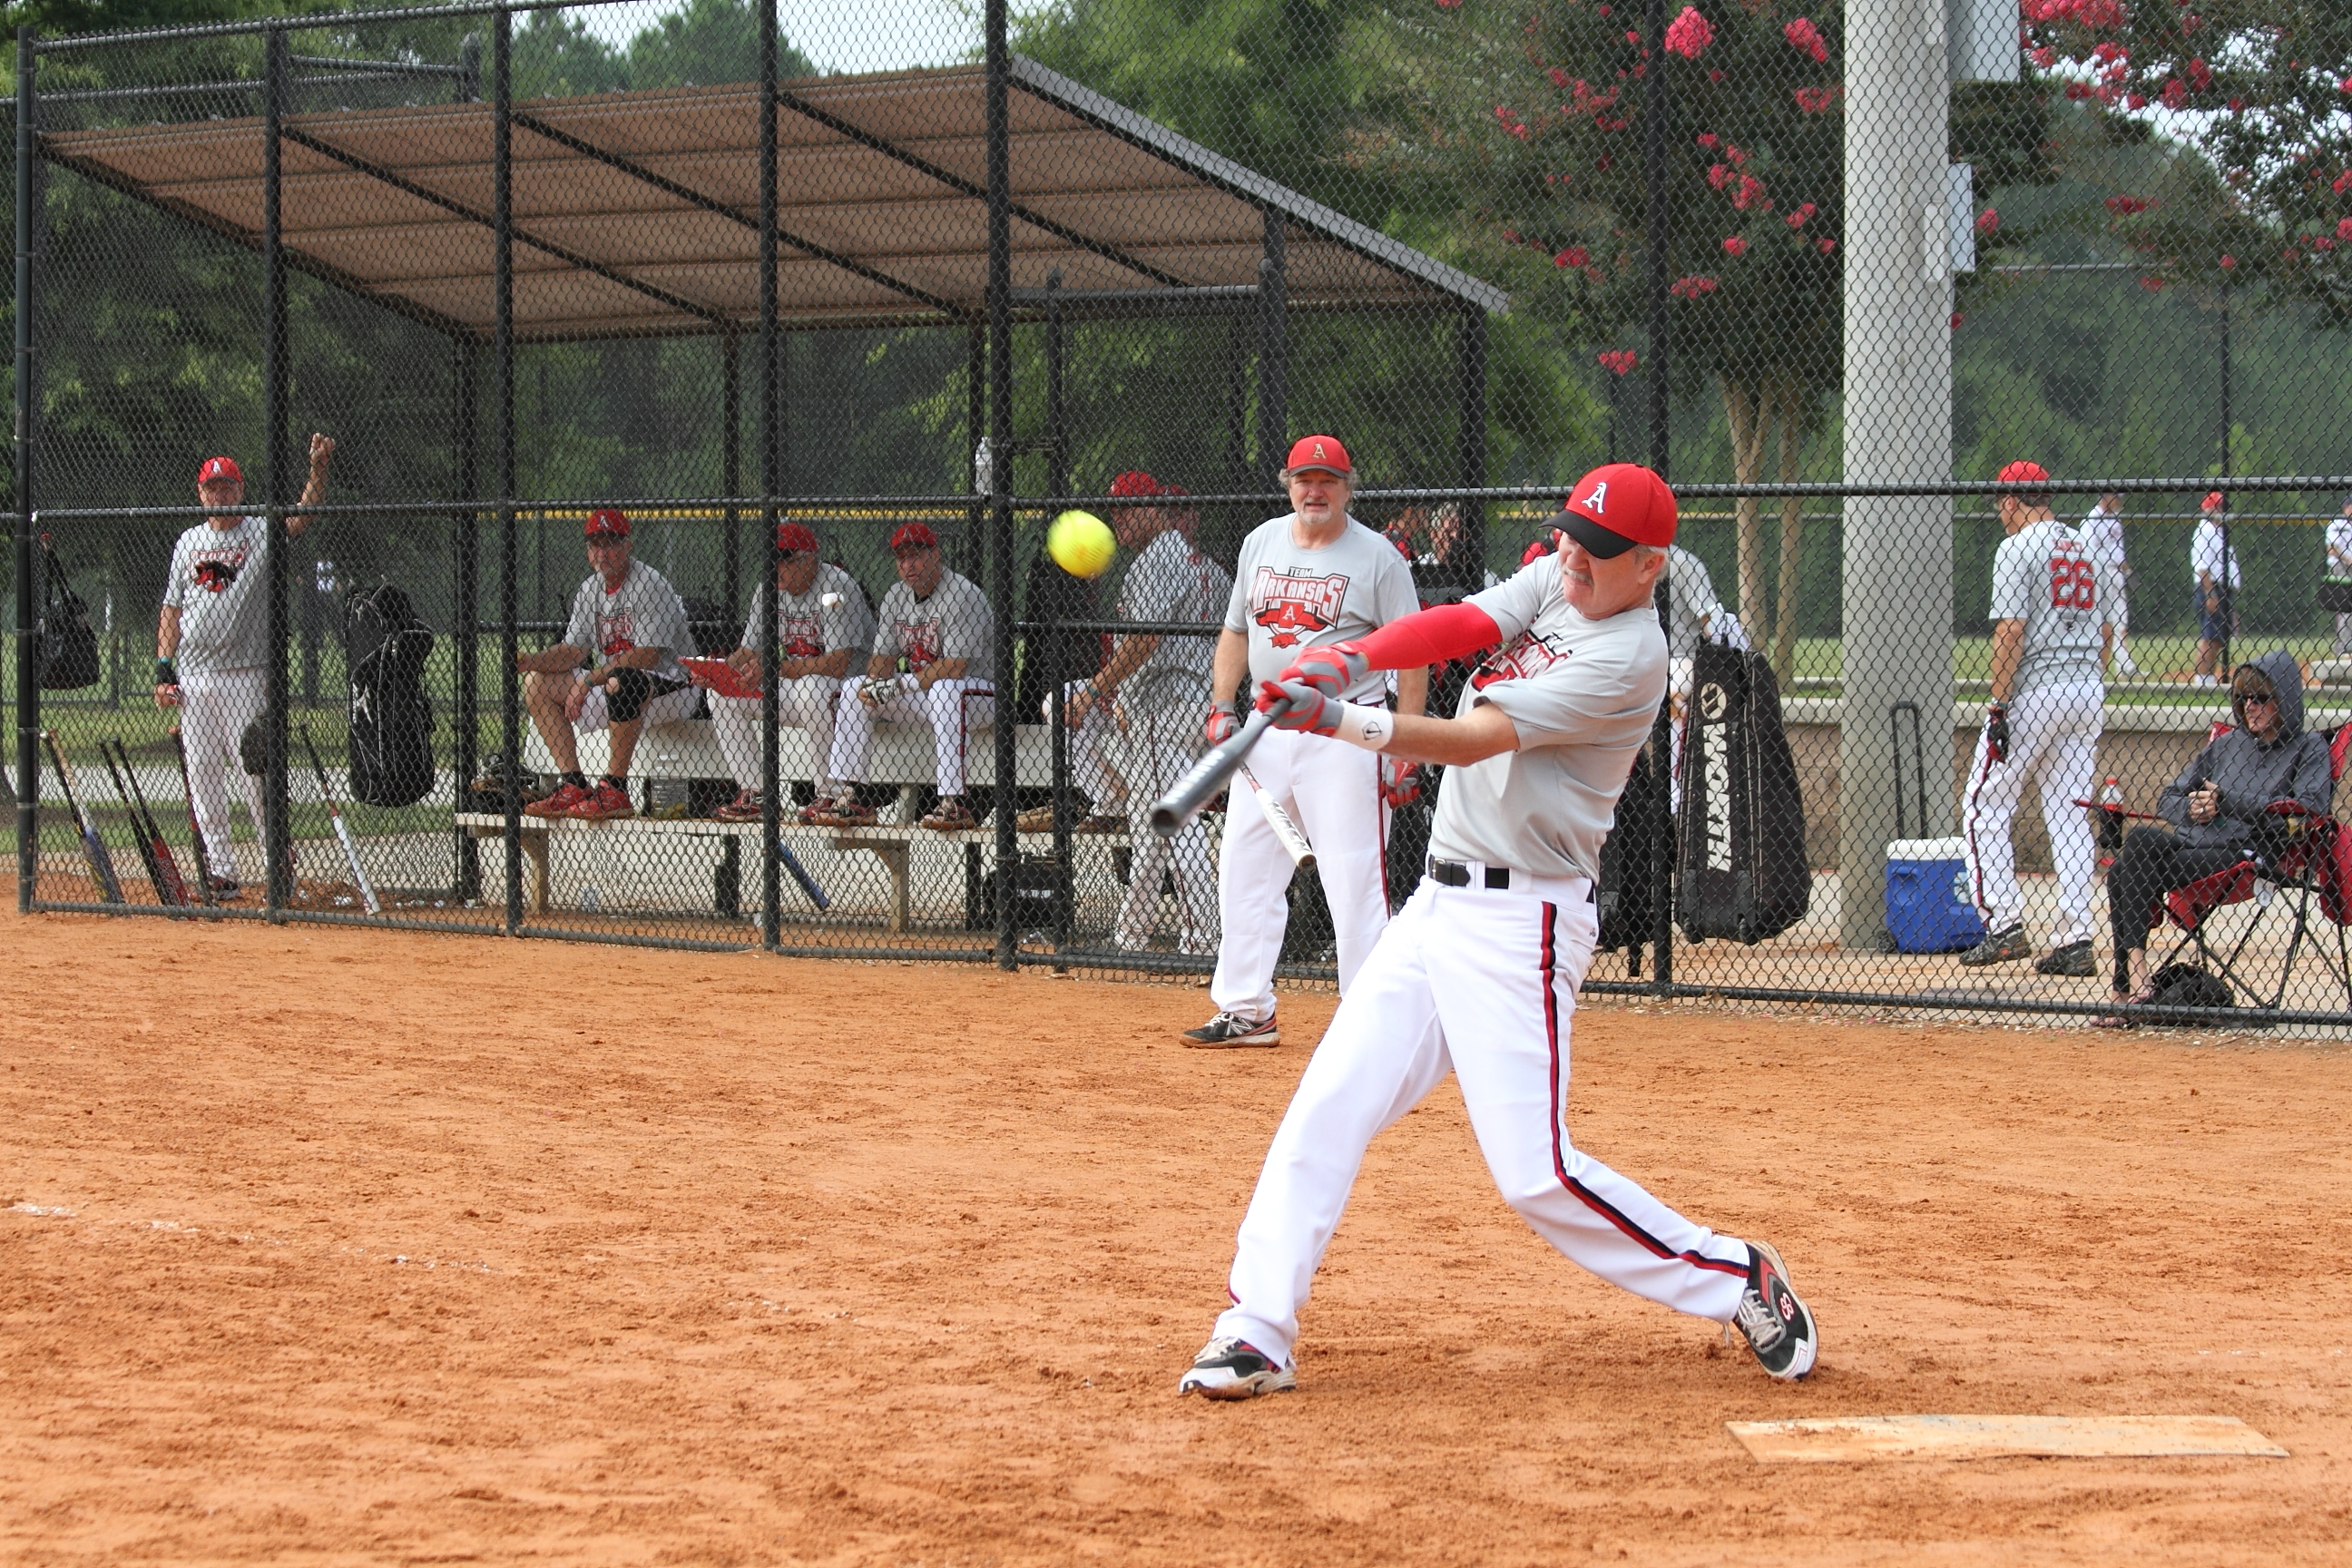 Senior Softball World Championship